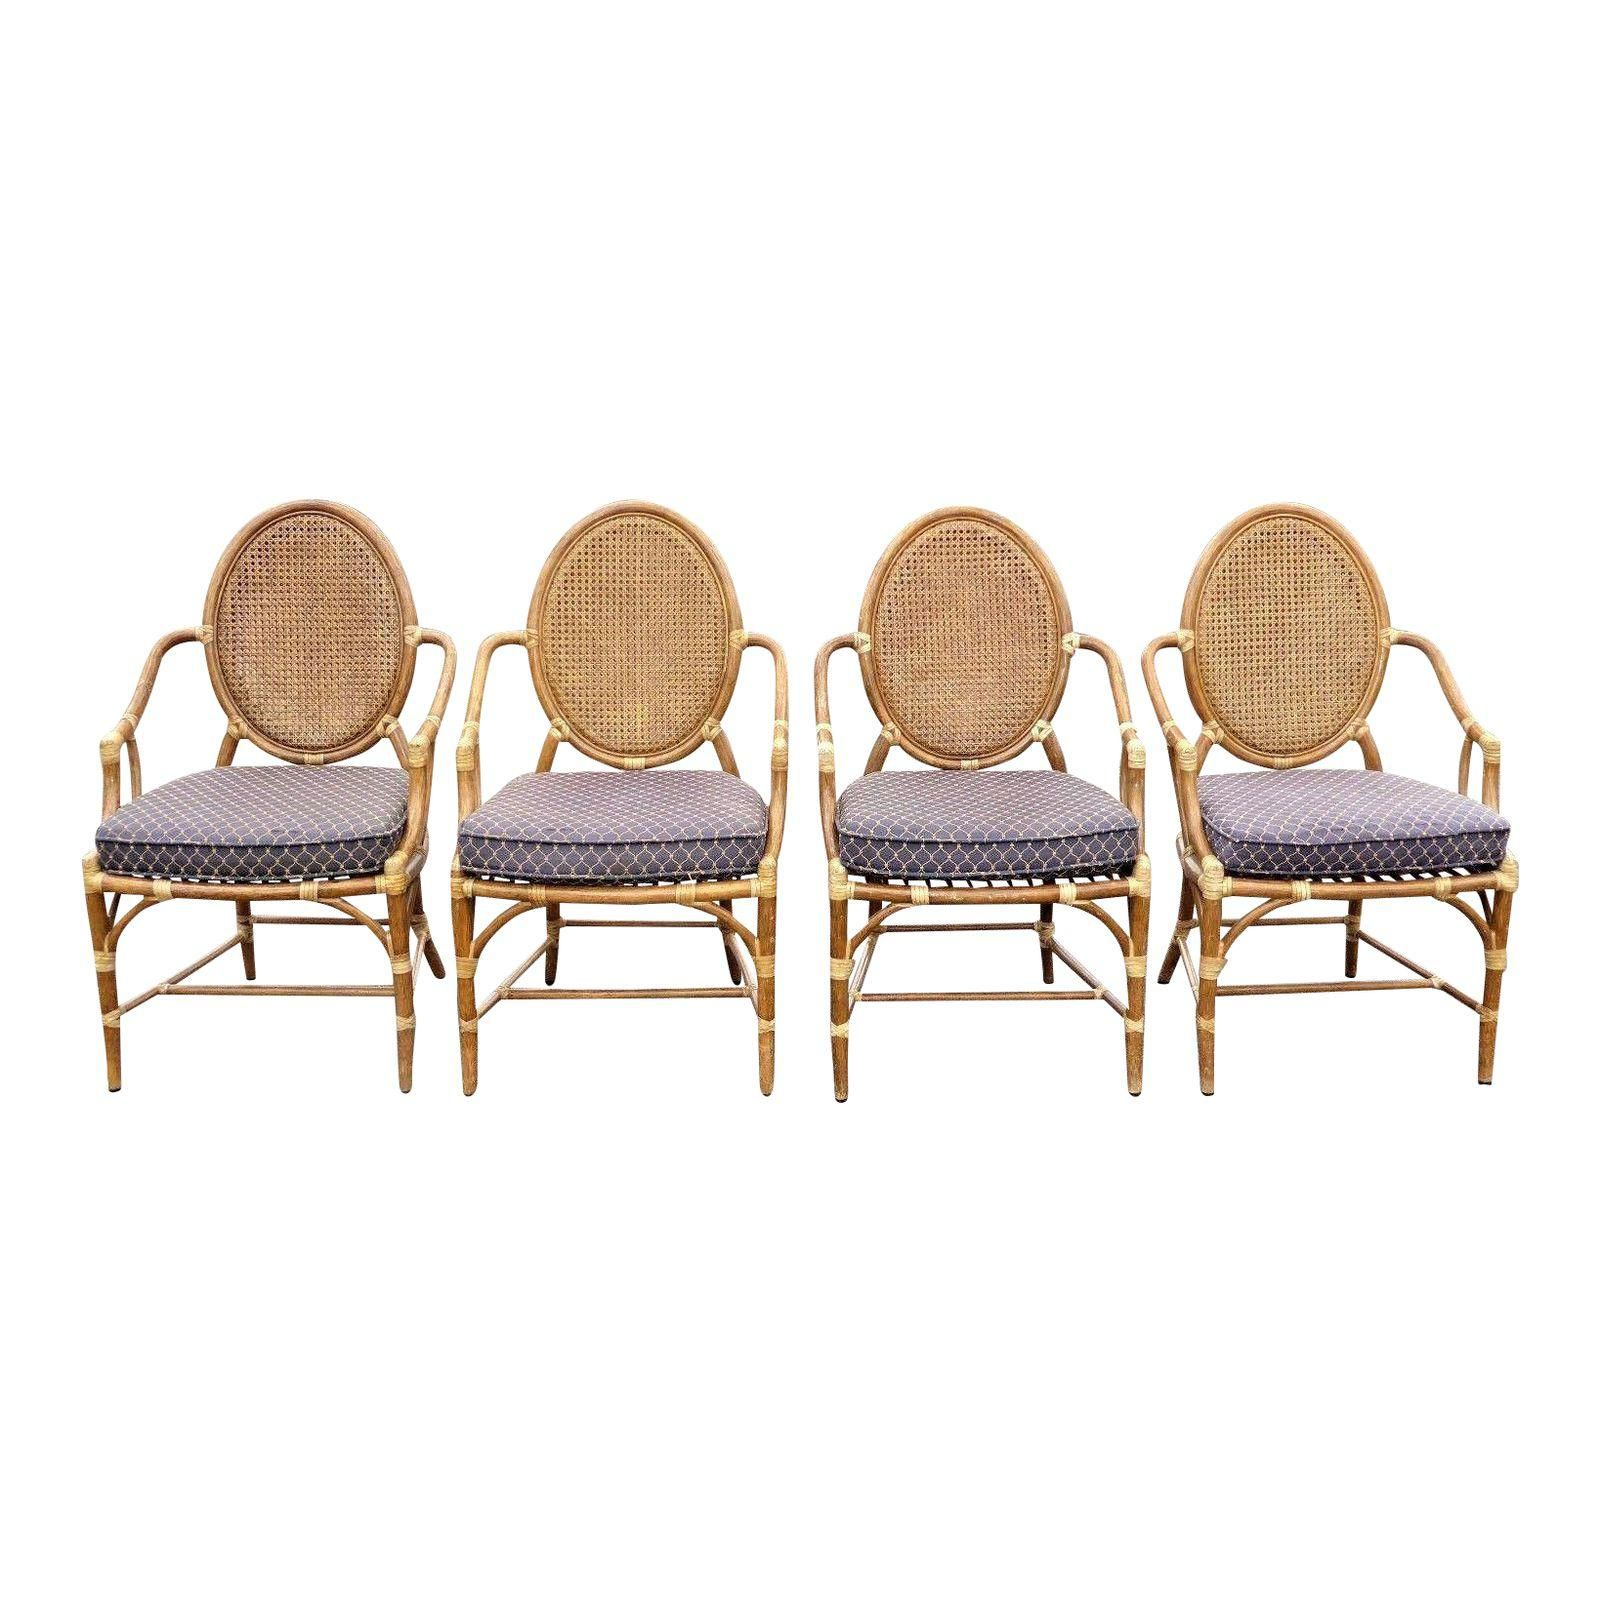 Vintage McGuire Rattan Cane Back Dining Chairs Set of 4